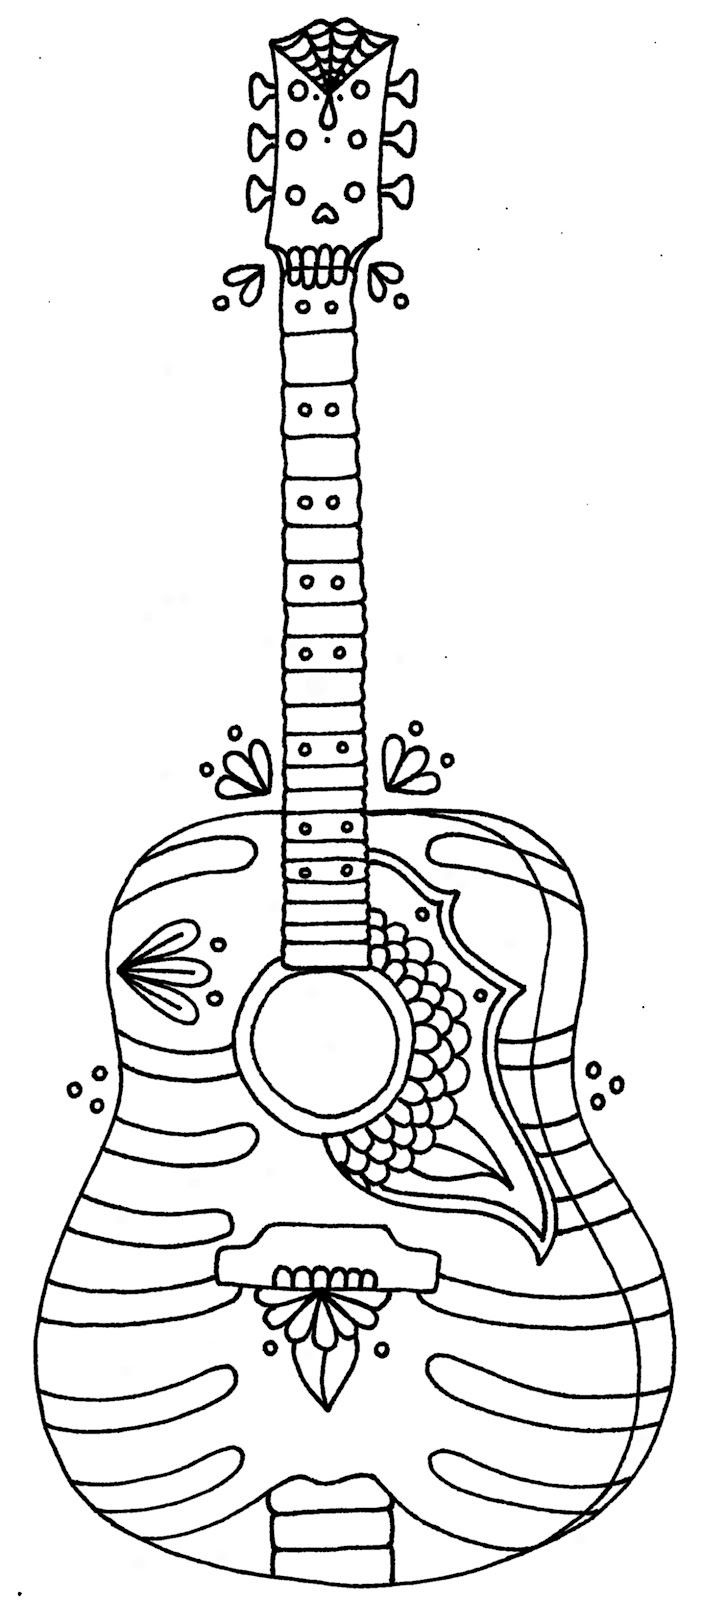 Free printable musical instruments coloring pages | Music coloring ... | 1600x702